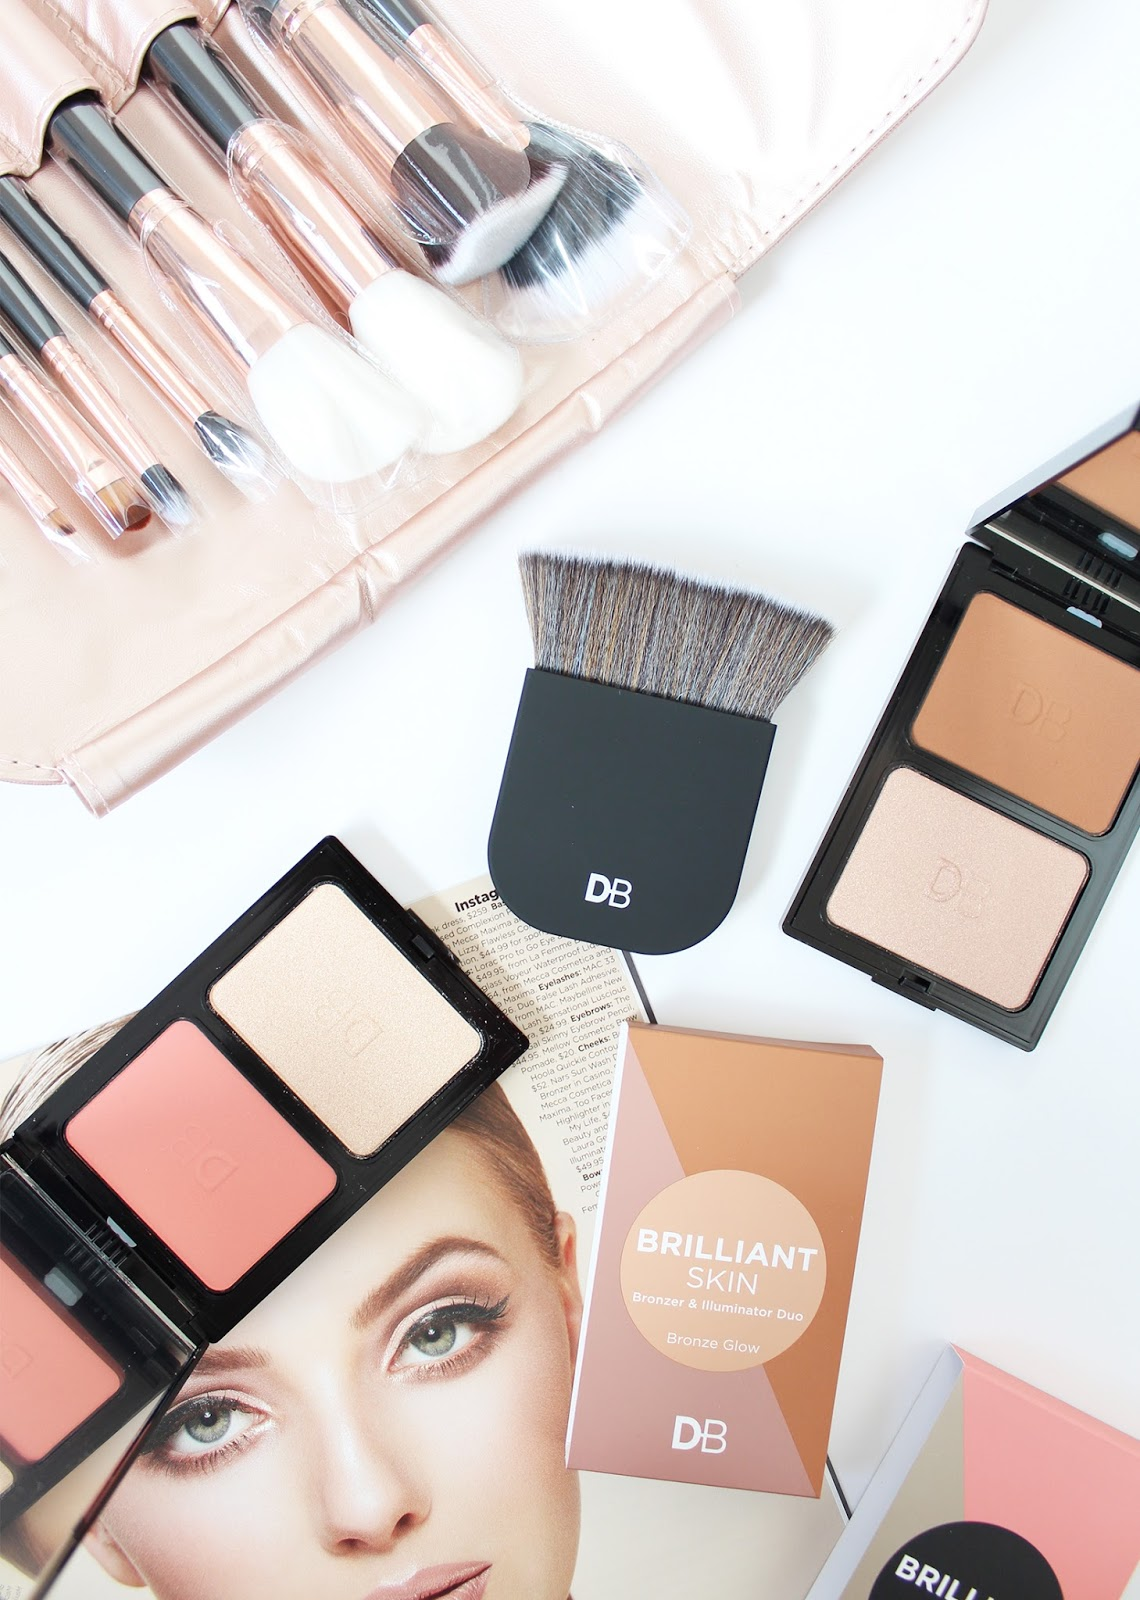 DESIGNER BRANDS | Rose Gold Brush Set + Brilliant Skin Palettes - CassandraMyee